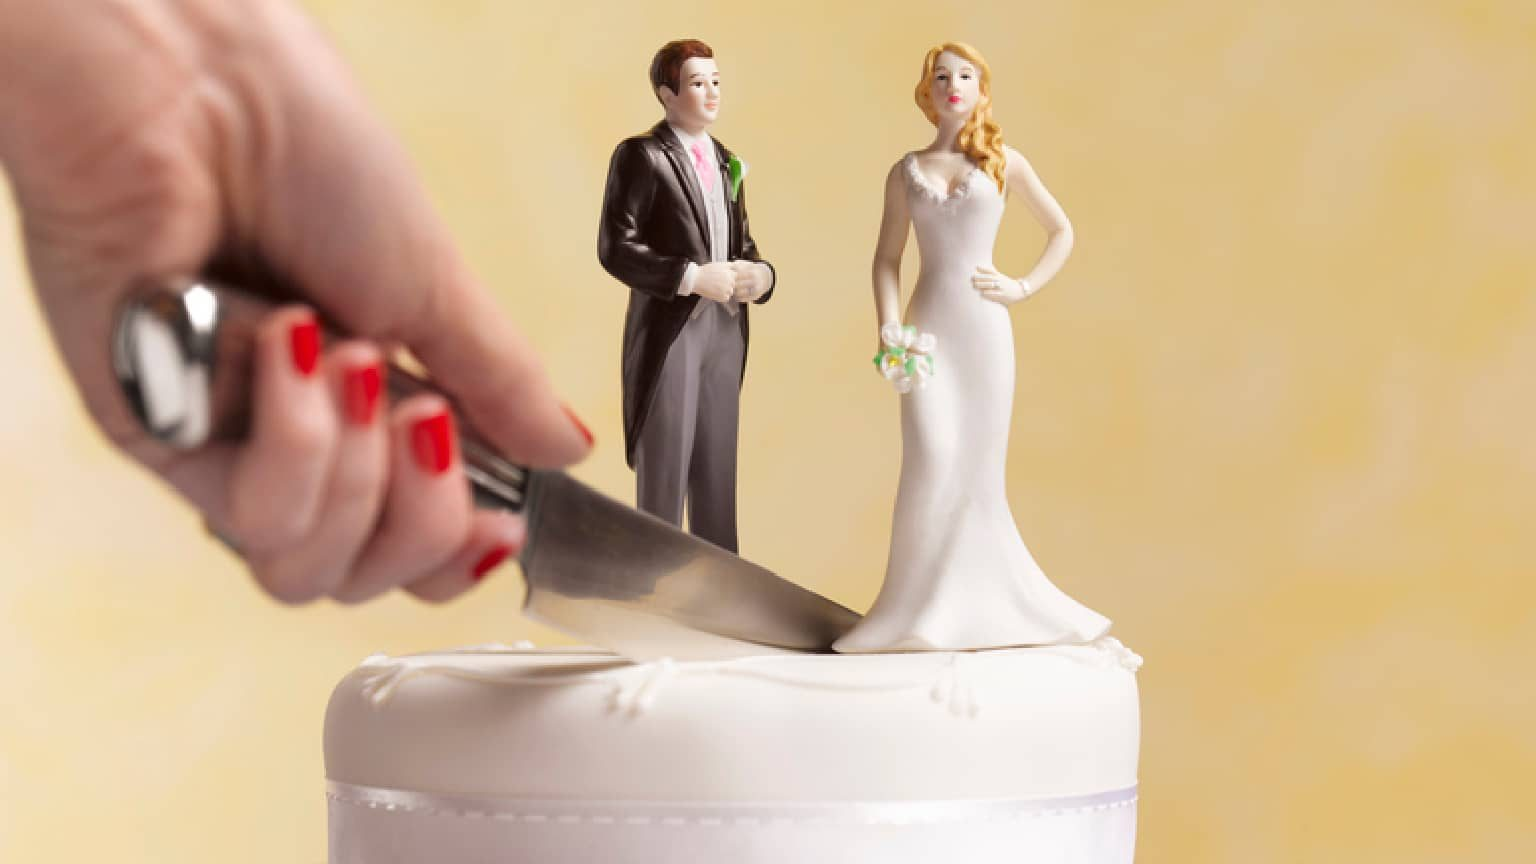 a wedding cake being cut in half between the man and woman topper signifying divorce